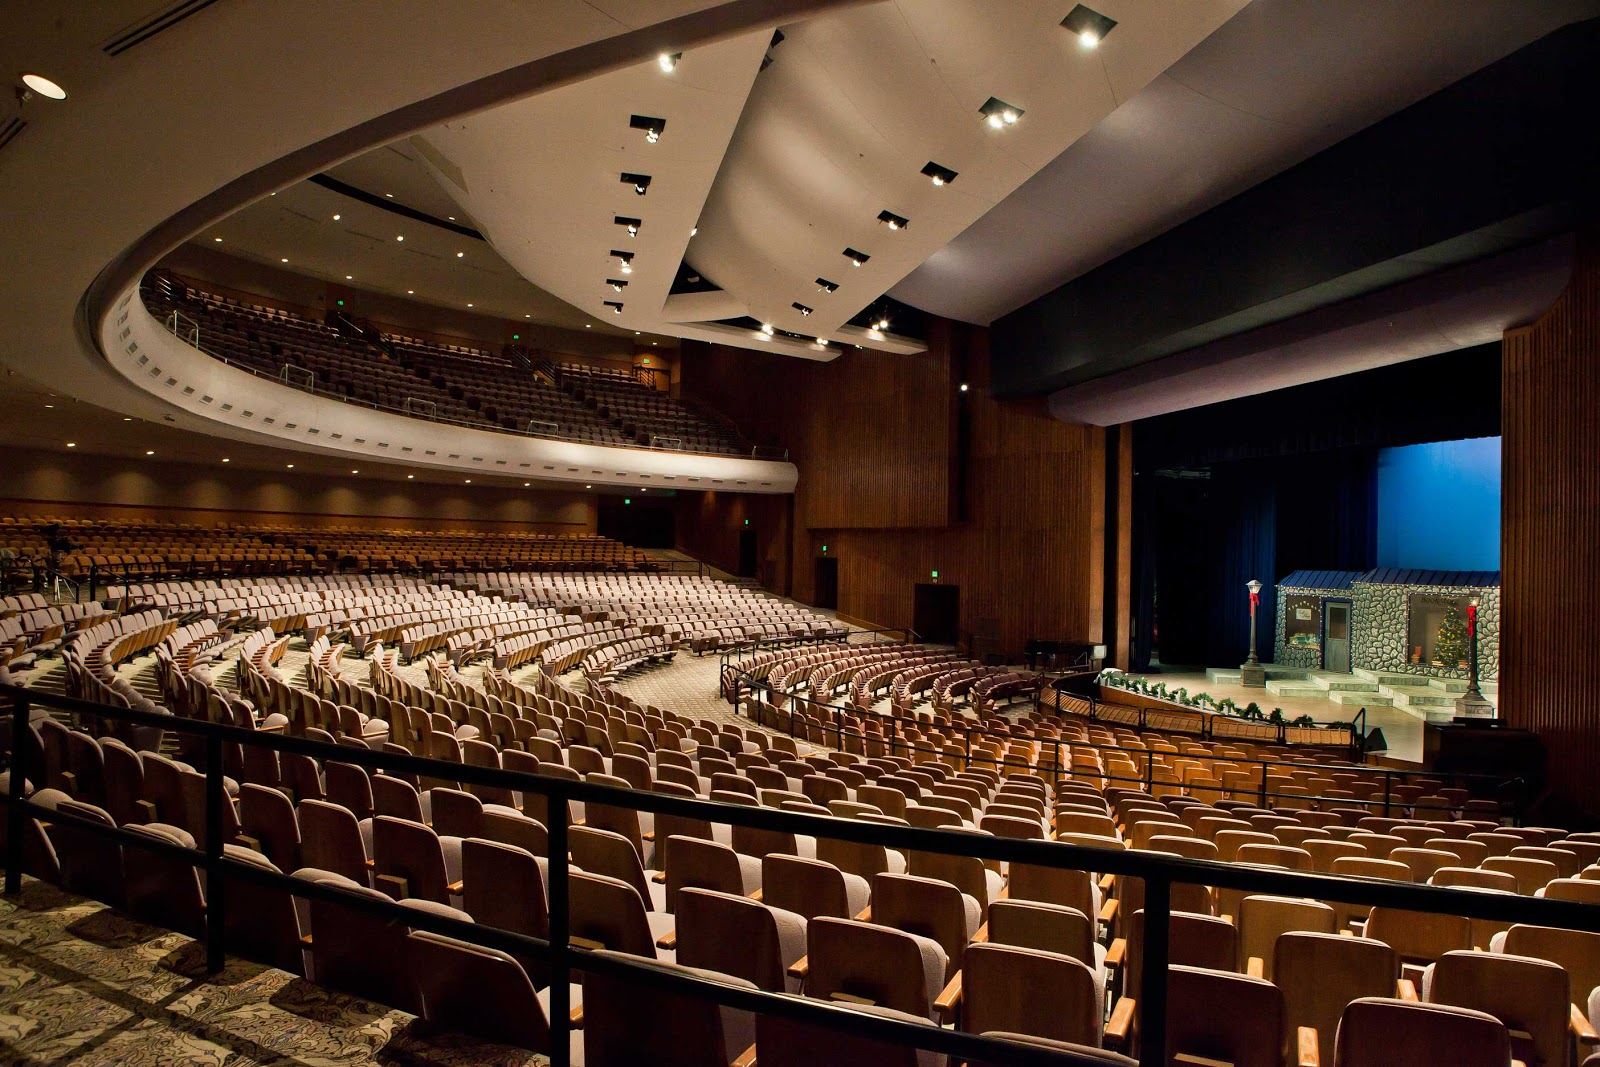 HARMANs Crown Amplifiers Provide Power And Flexibility In Dale Horton Auditorium At Pensacola